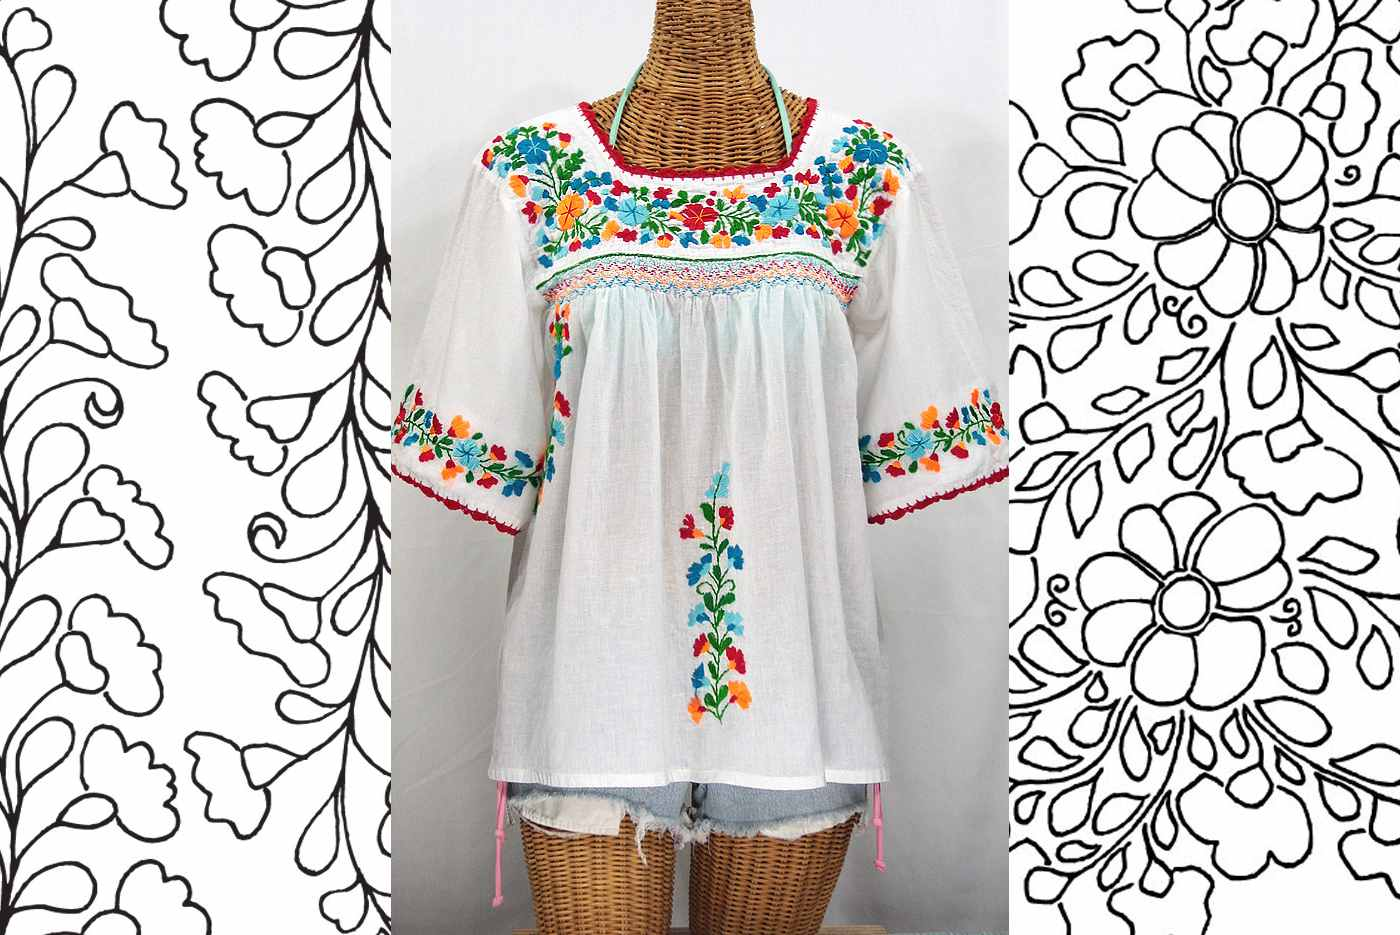 Mexican Embroidery Patterns Unique Inspiration Ideas